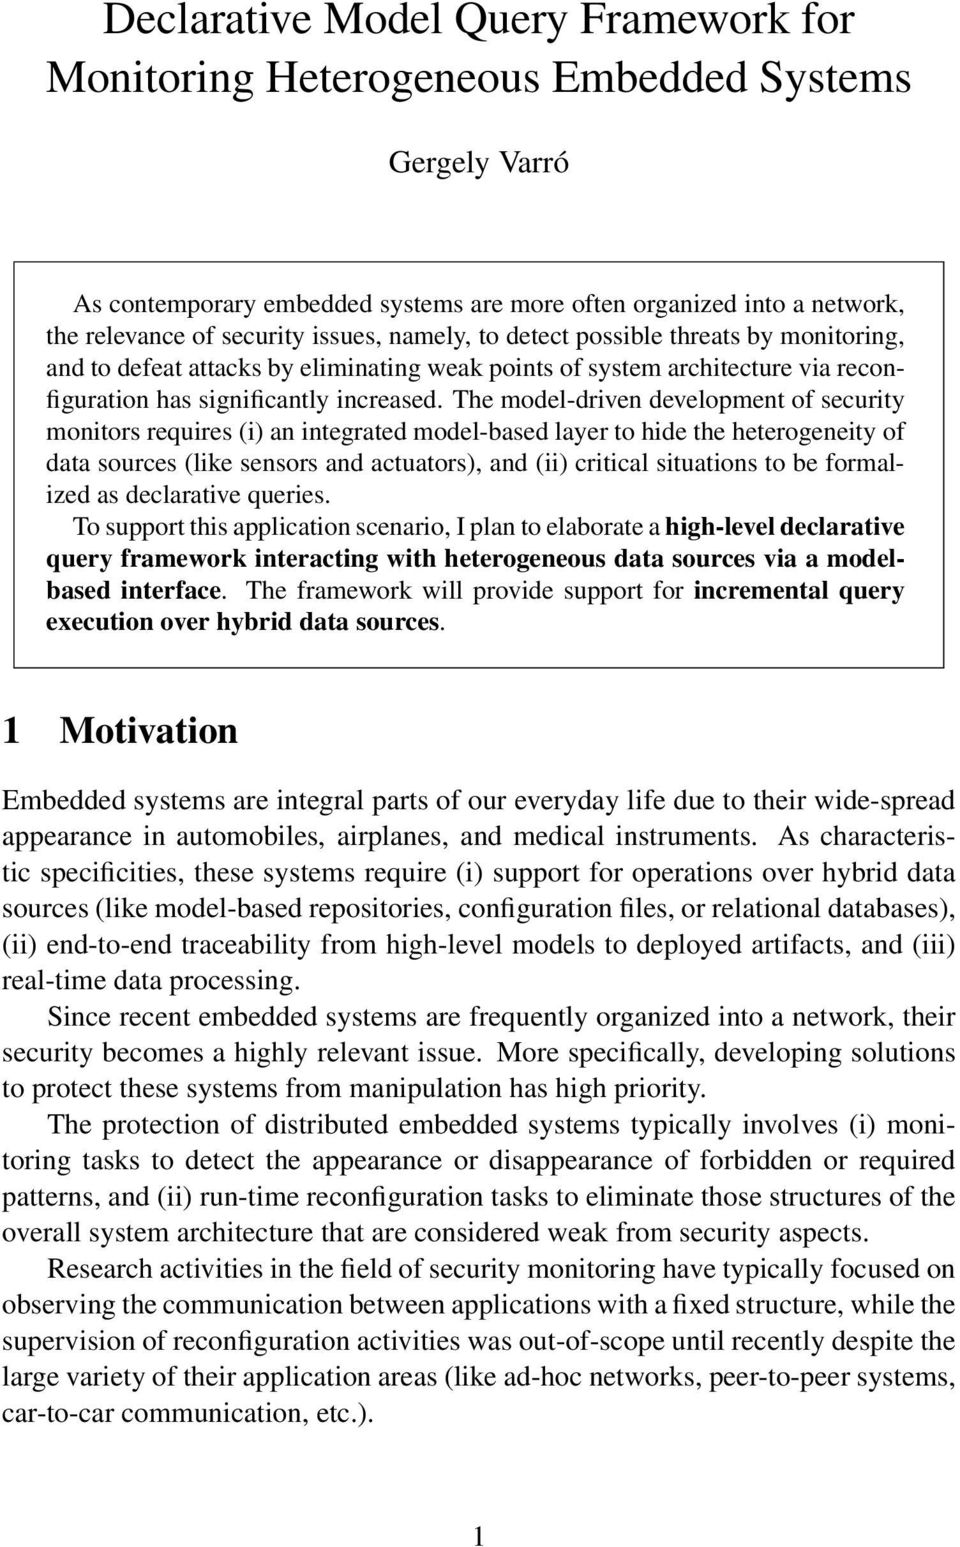 The model-driven development of security monitors requires (i) an integrated model-based layer to hide the heterogeneity of data sources (like sensors and actuators), and (ii) critical situations to